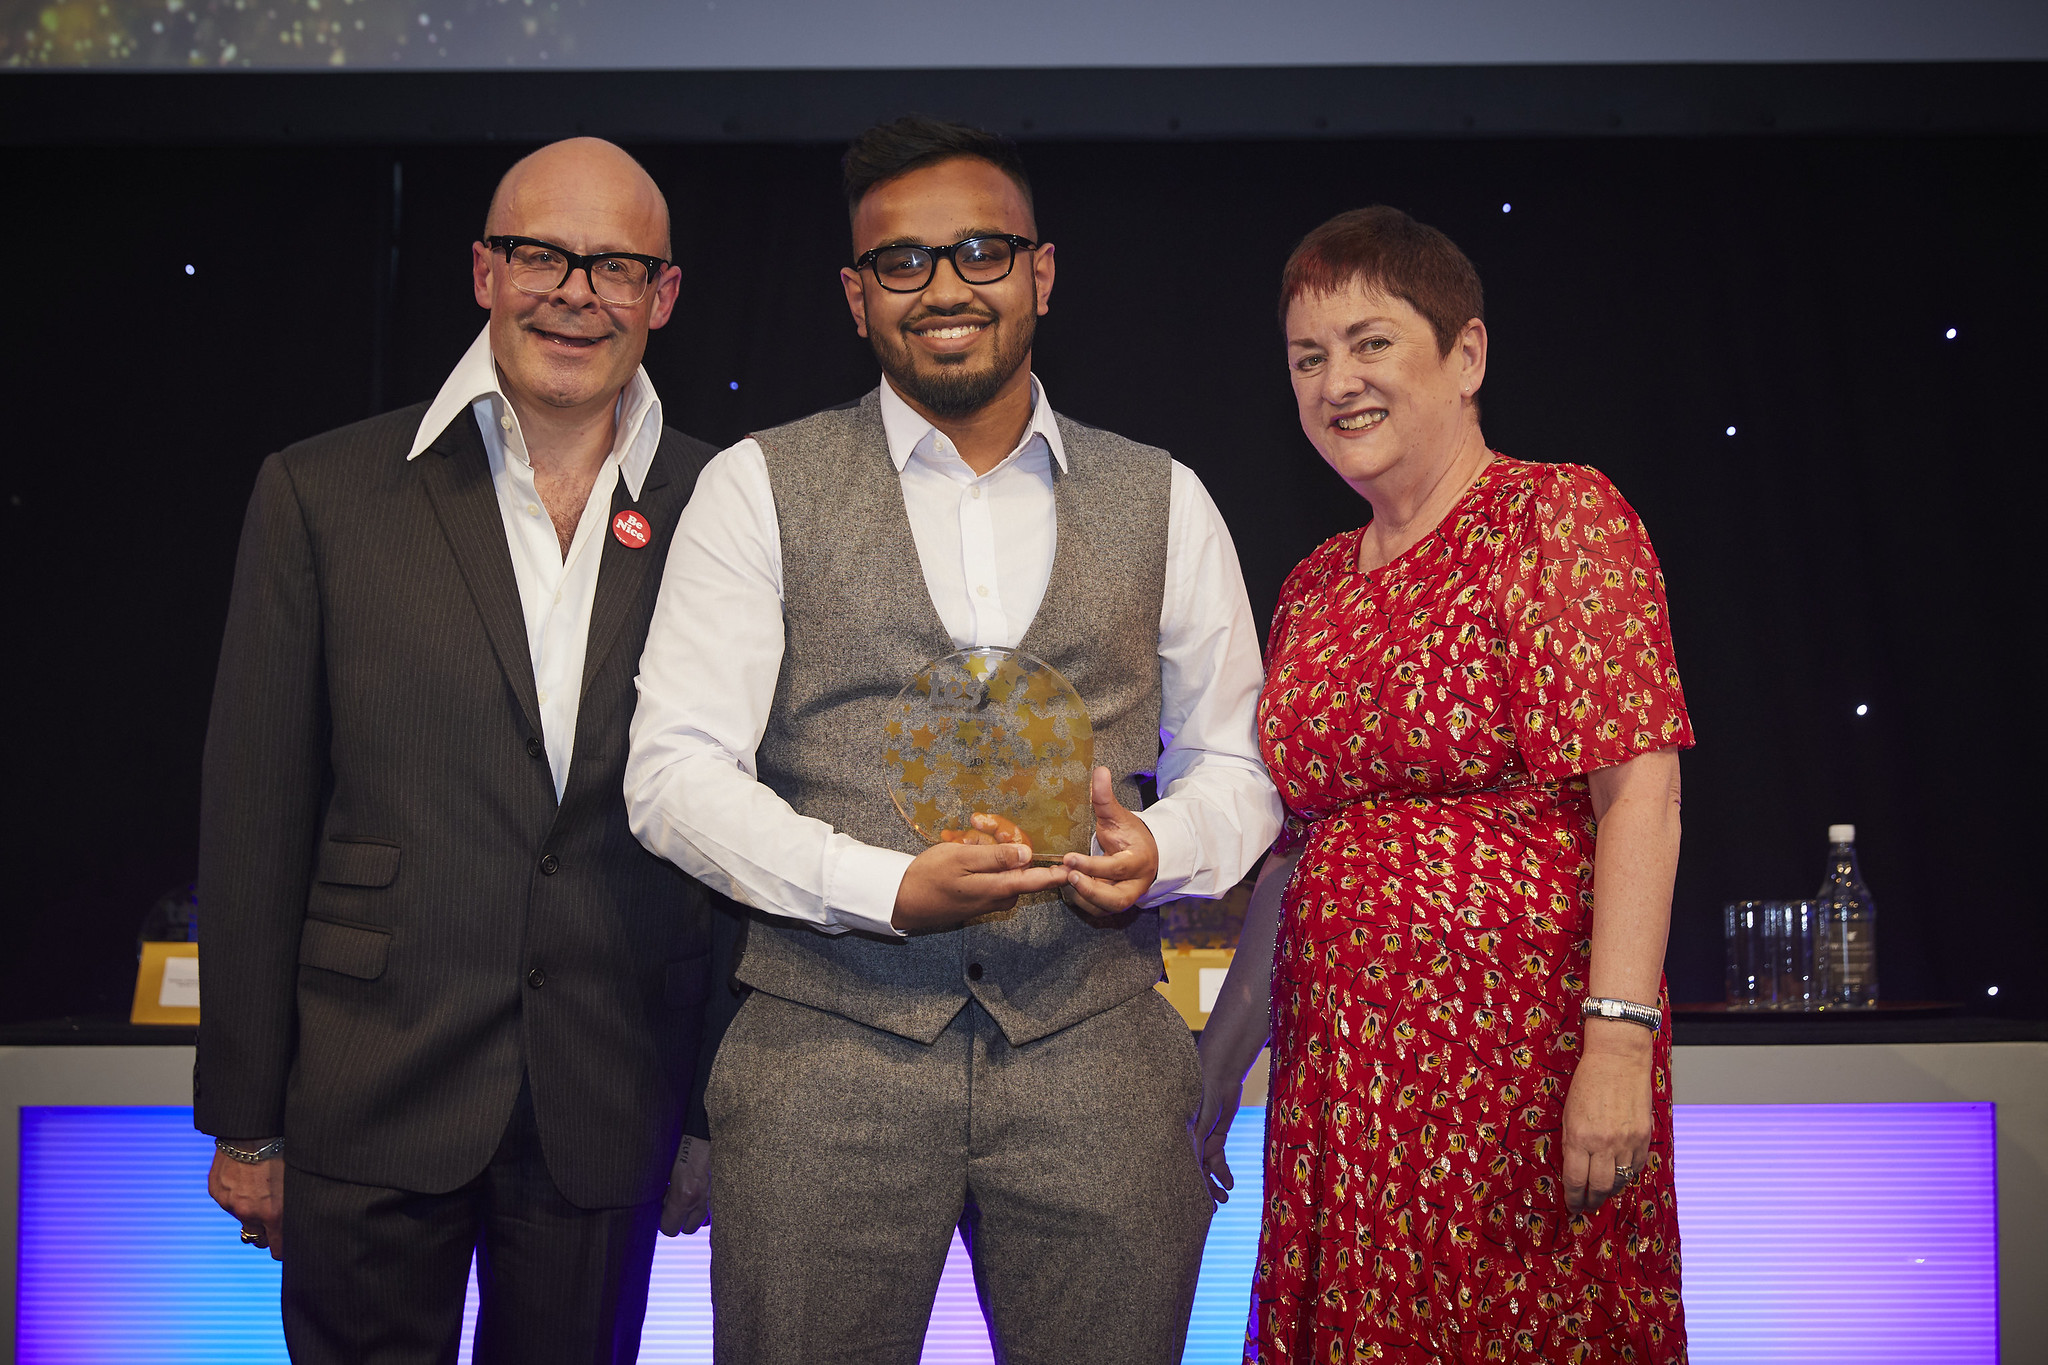 Abed winning New Teacher of the Year 2019 award